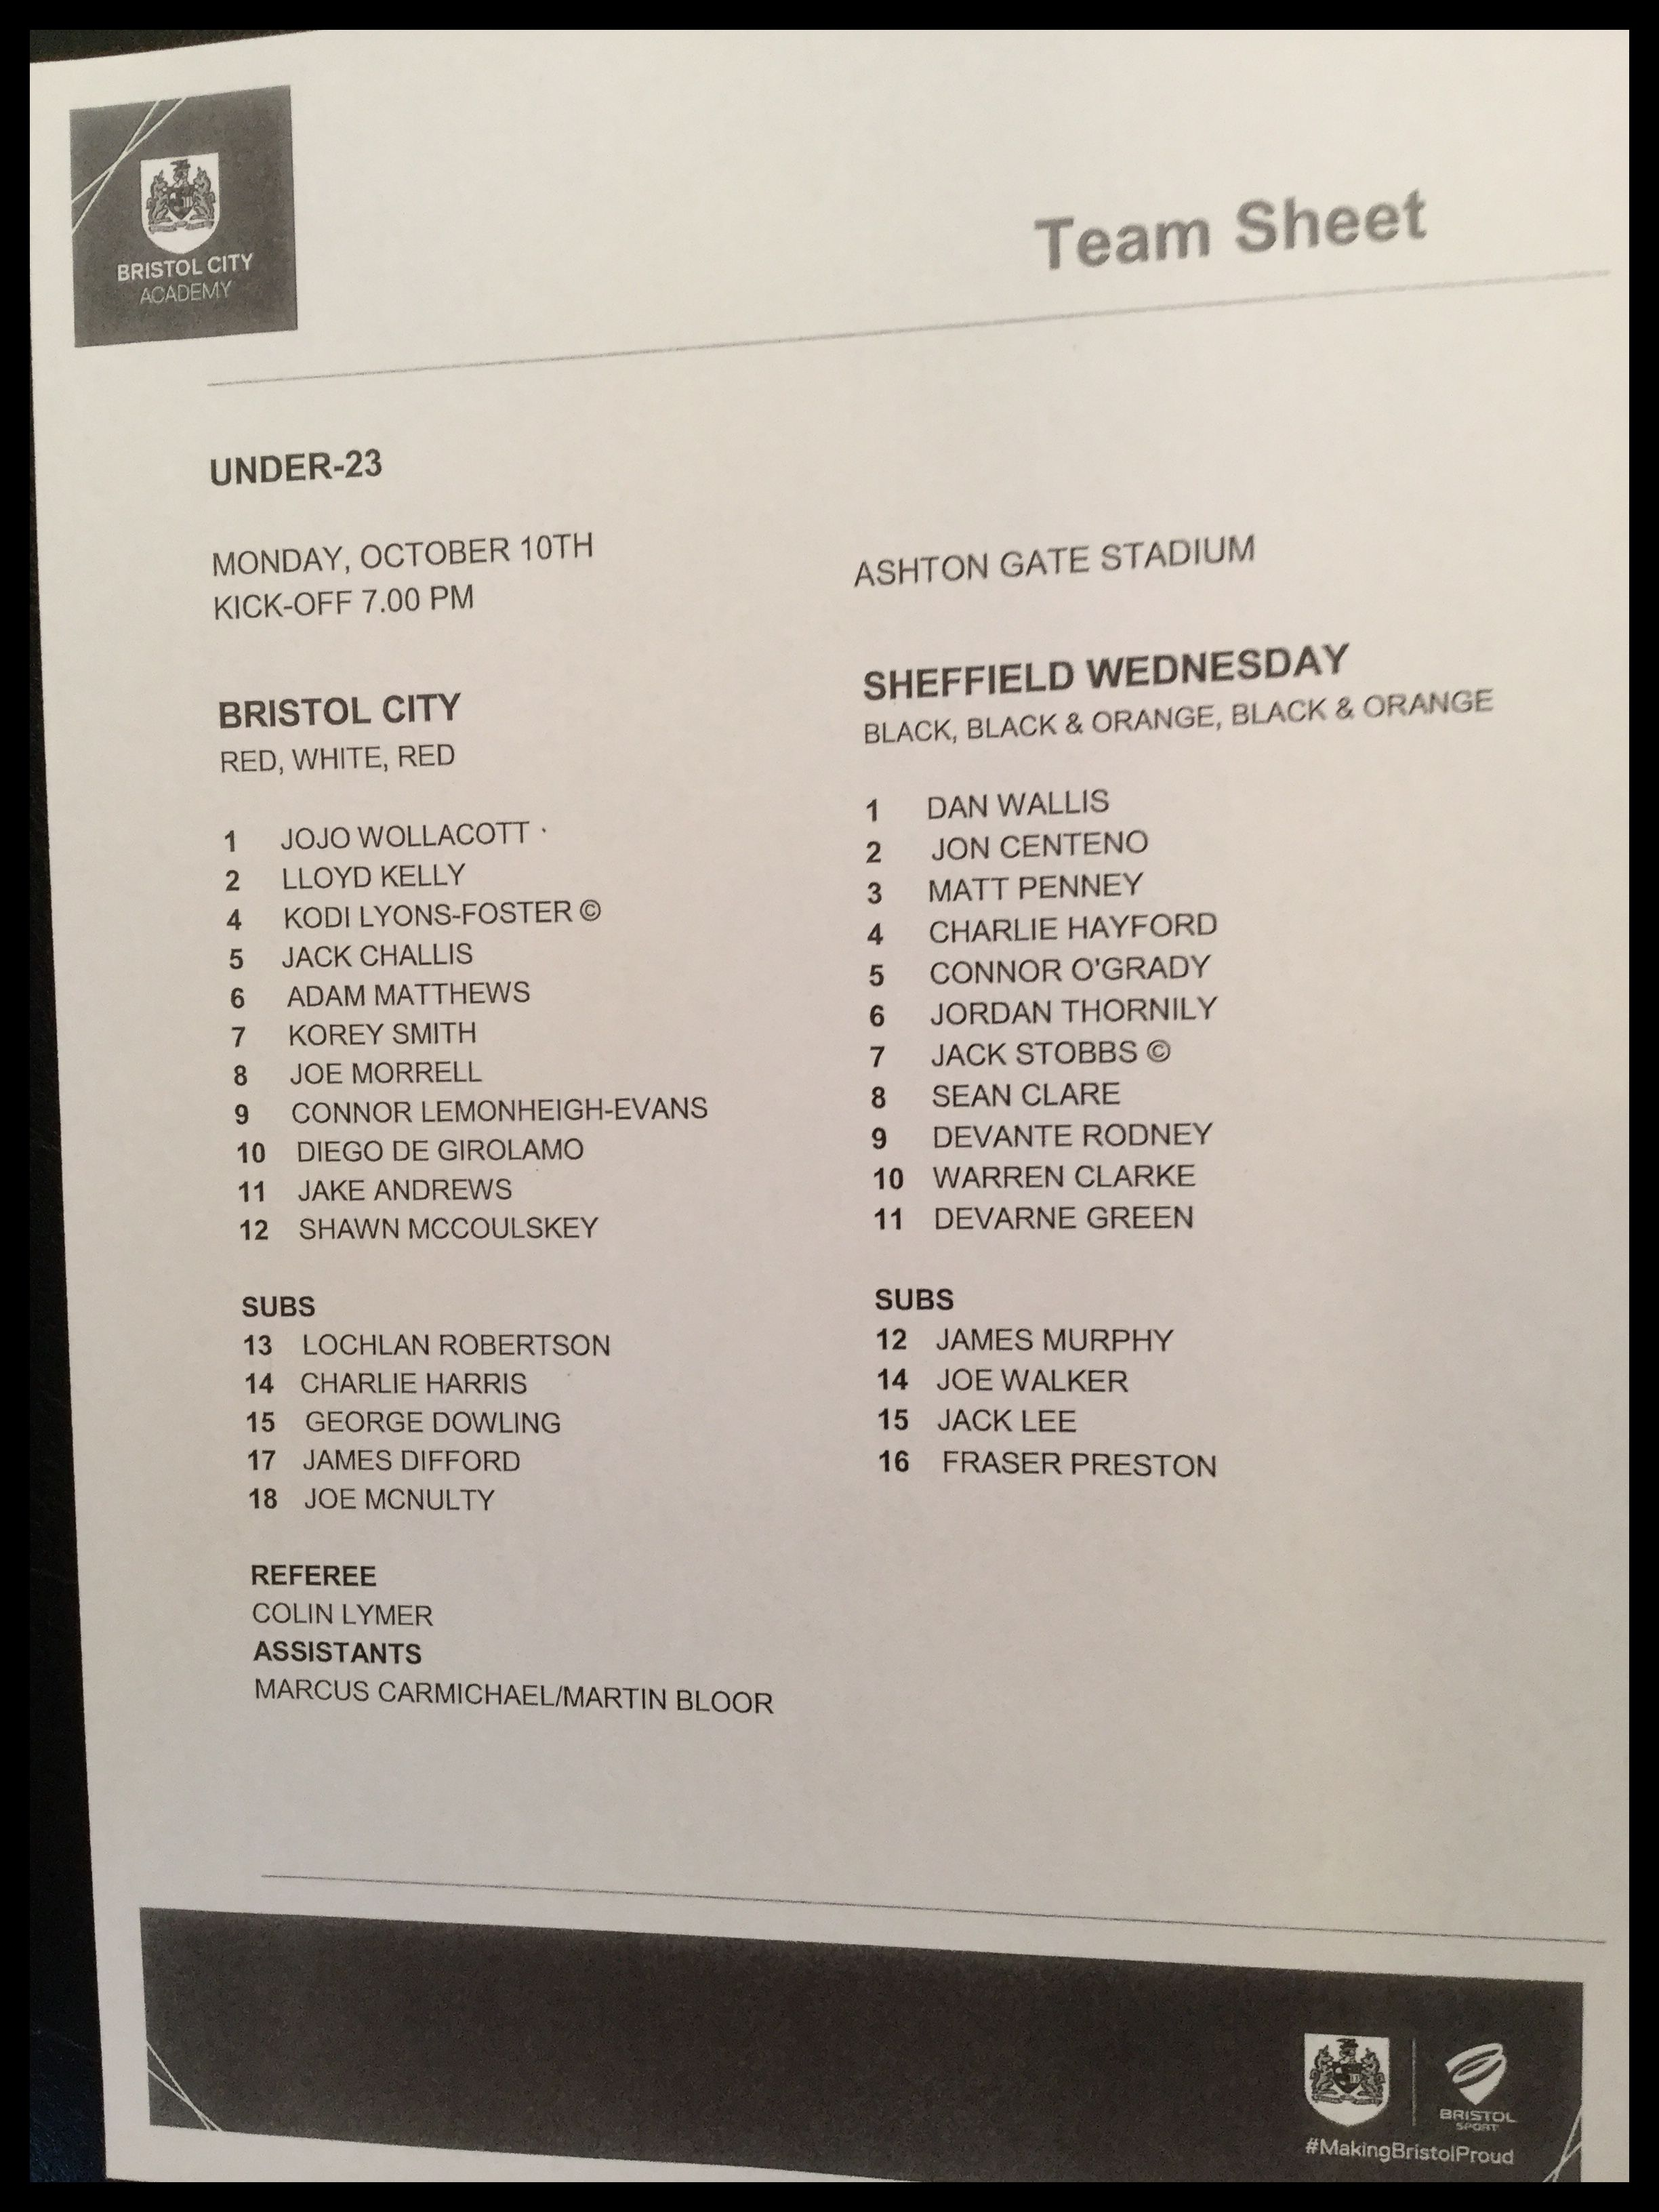 Bristol City v Sheffield Wednesday 10-10-16 Team Sheet